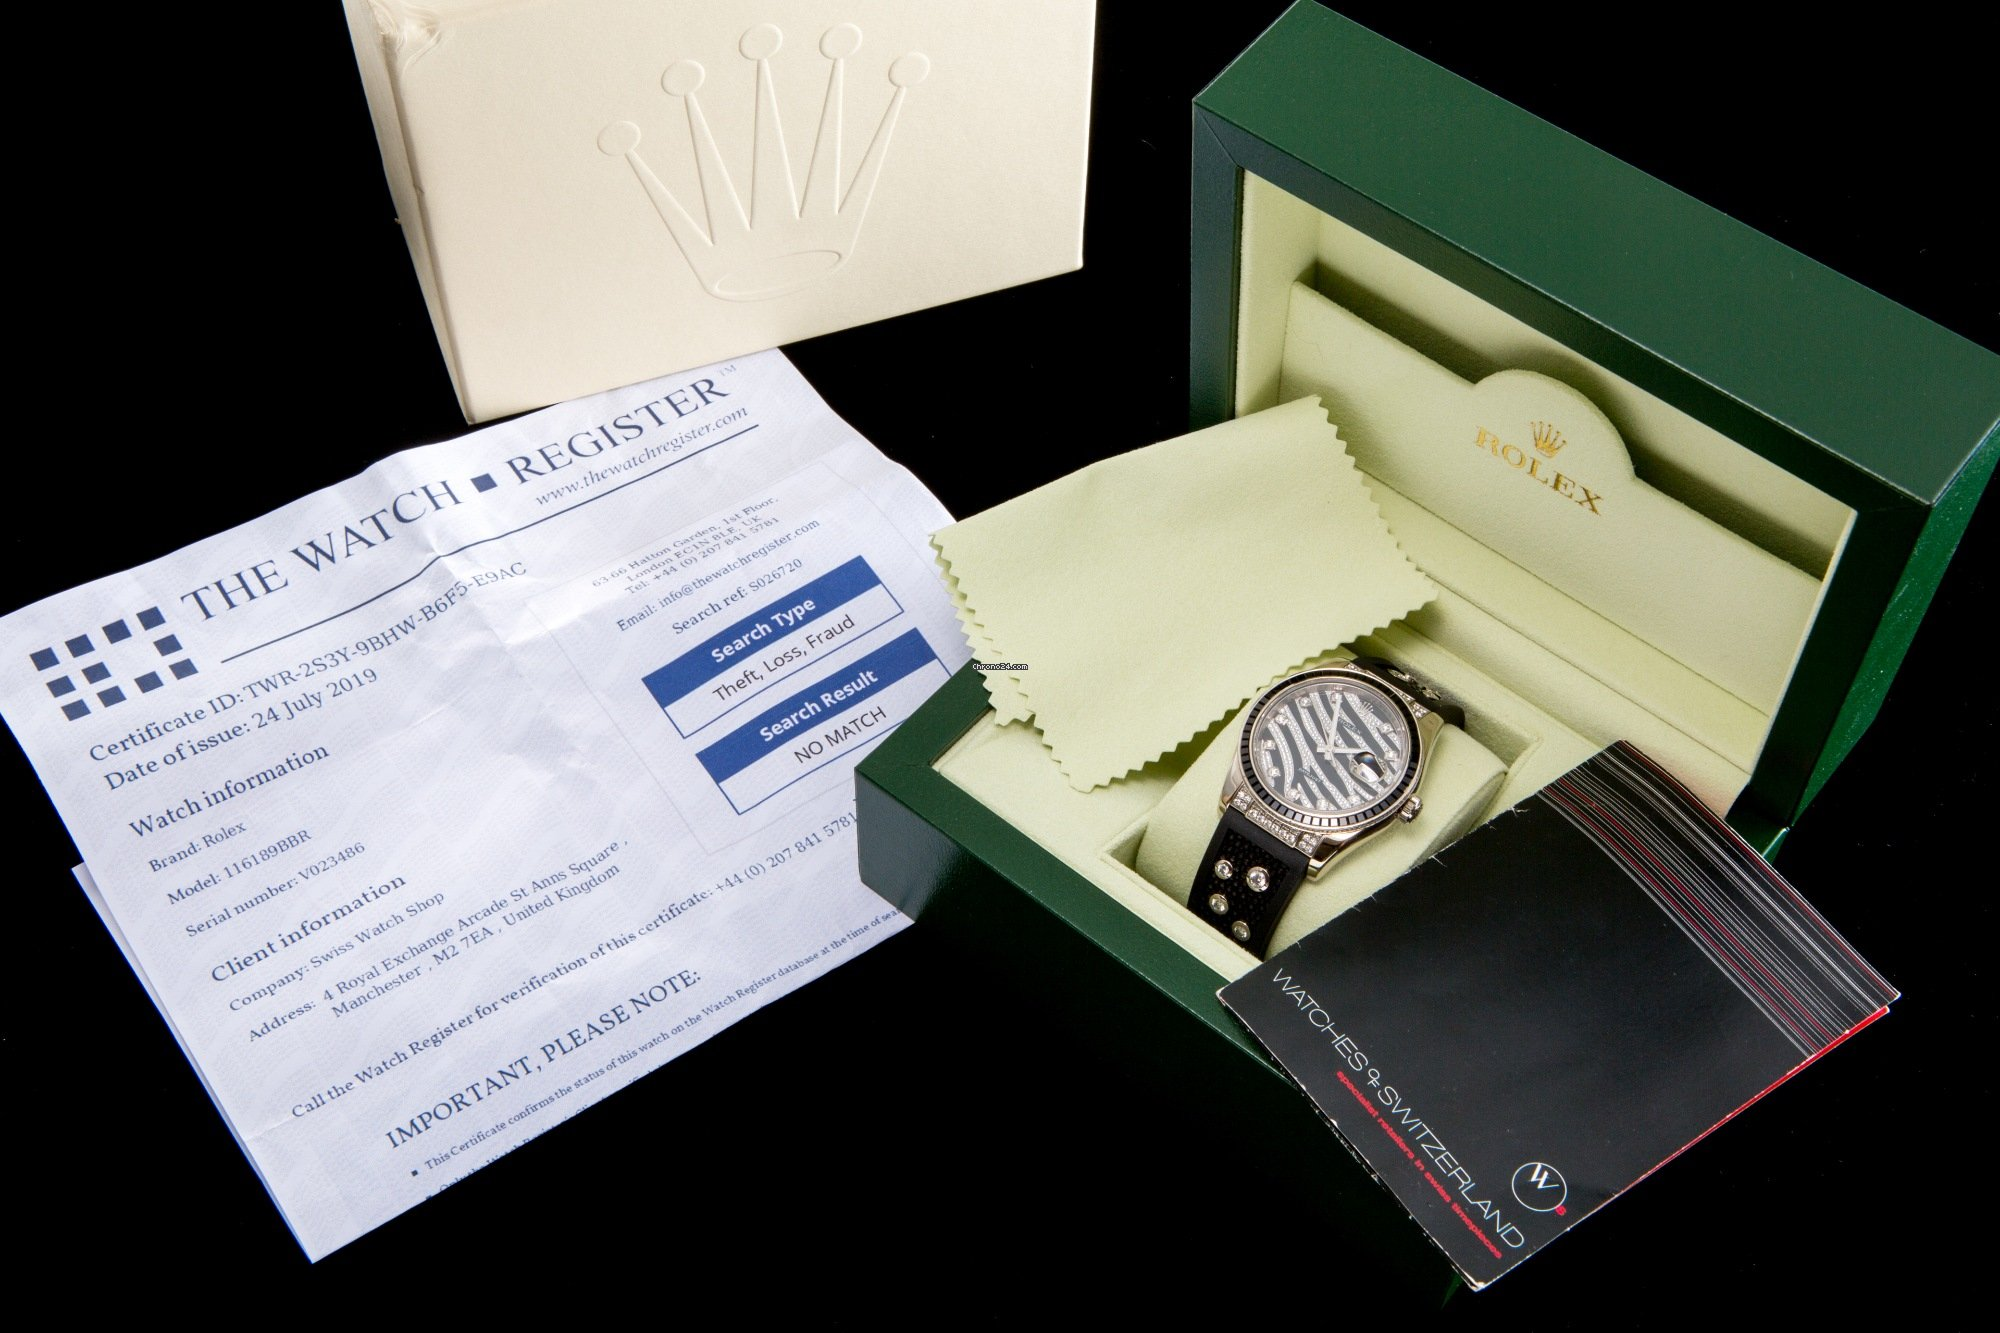 Rolex Datejust Zebra ltd edition for £29,950 for sale from a